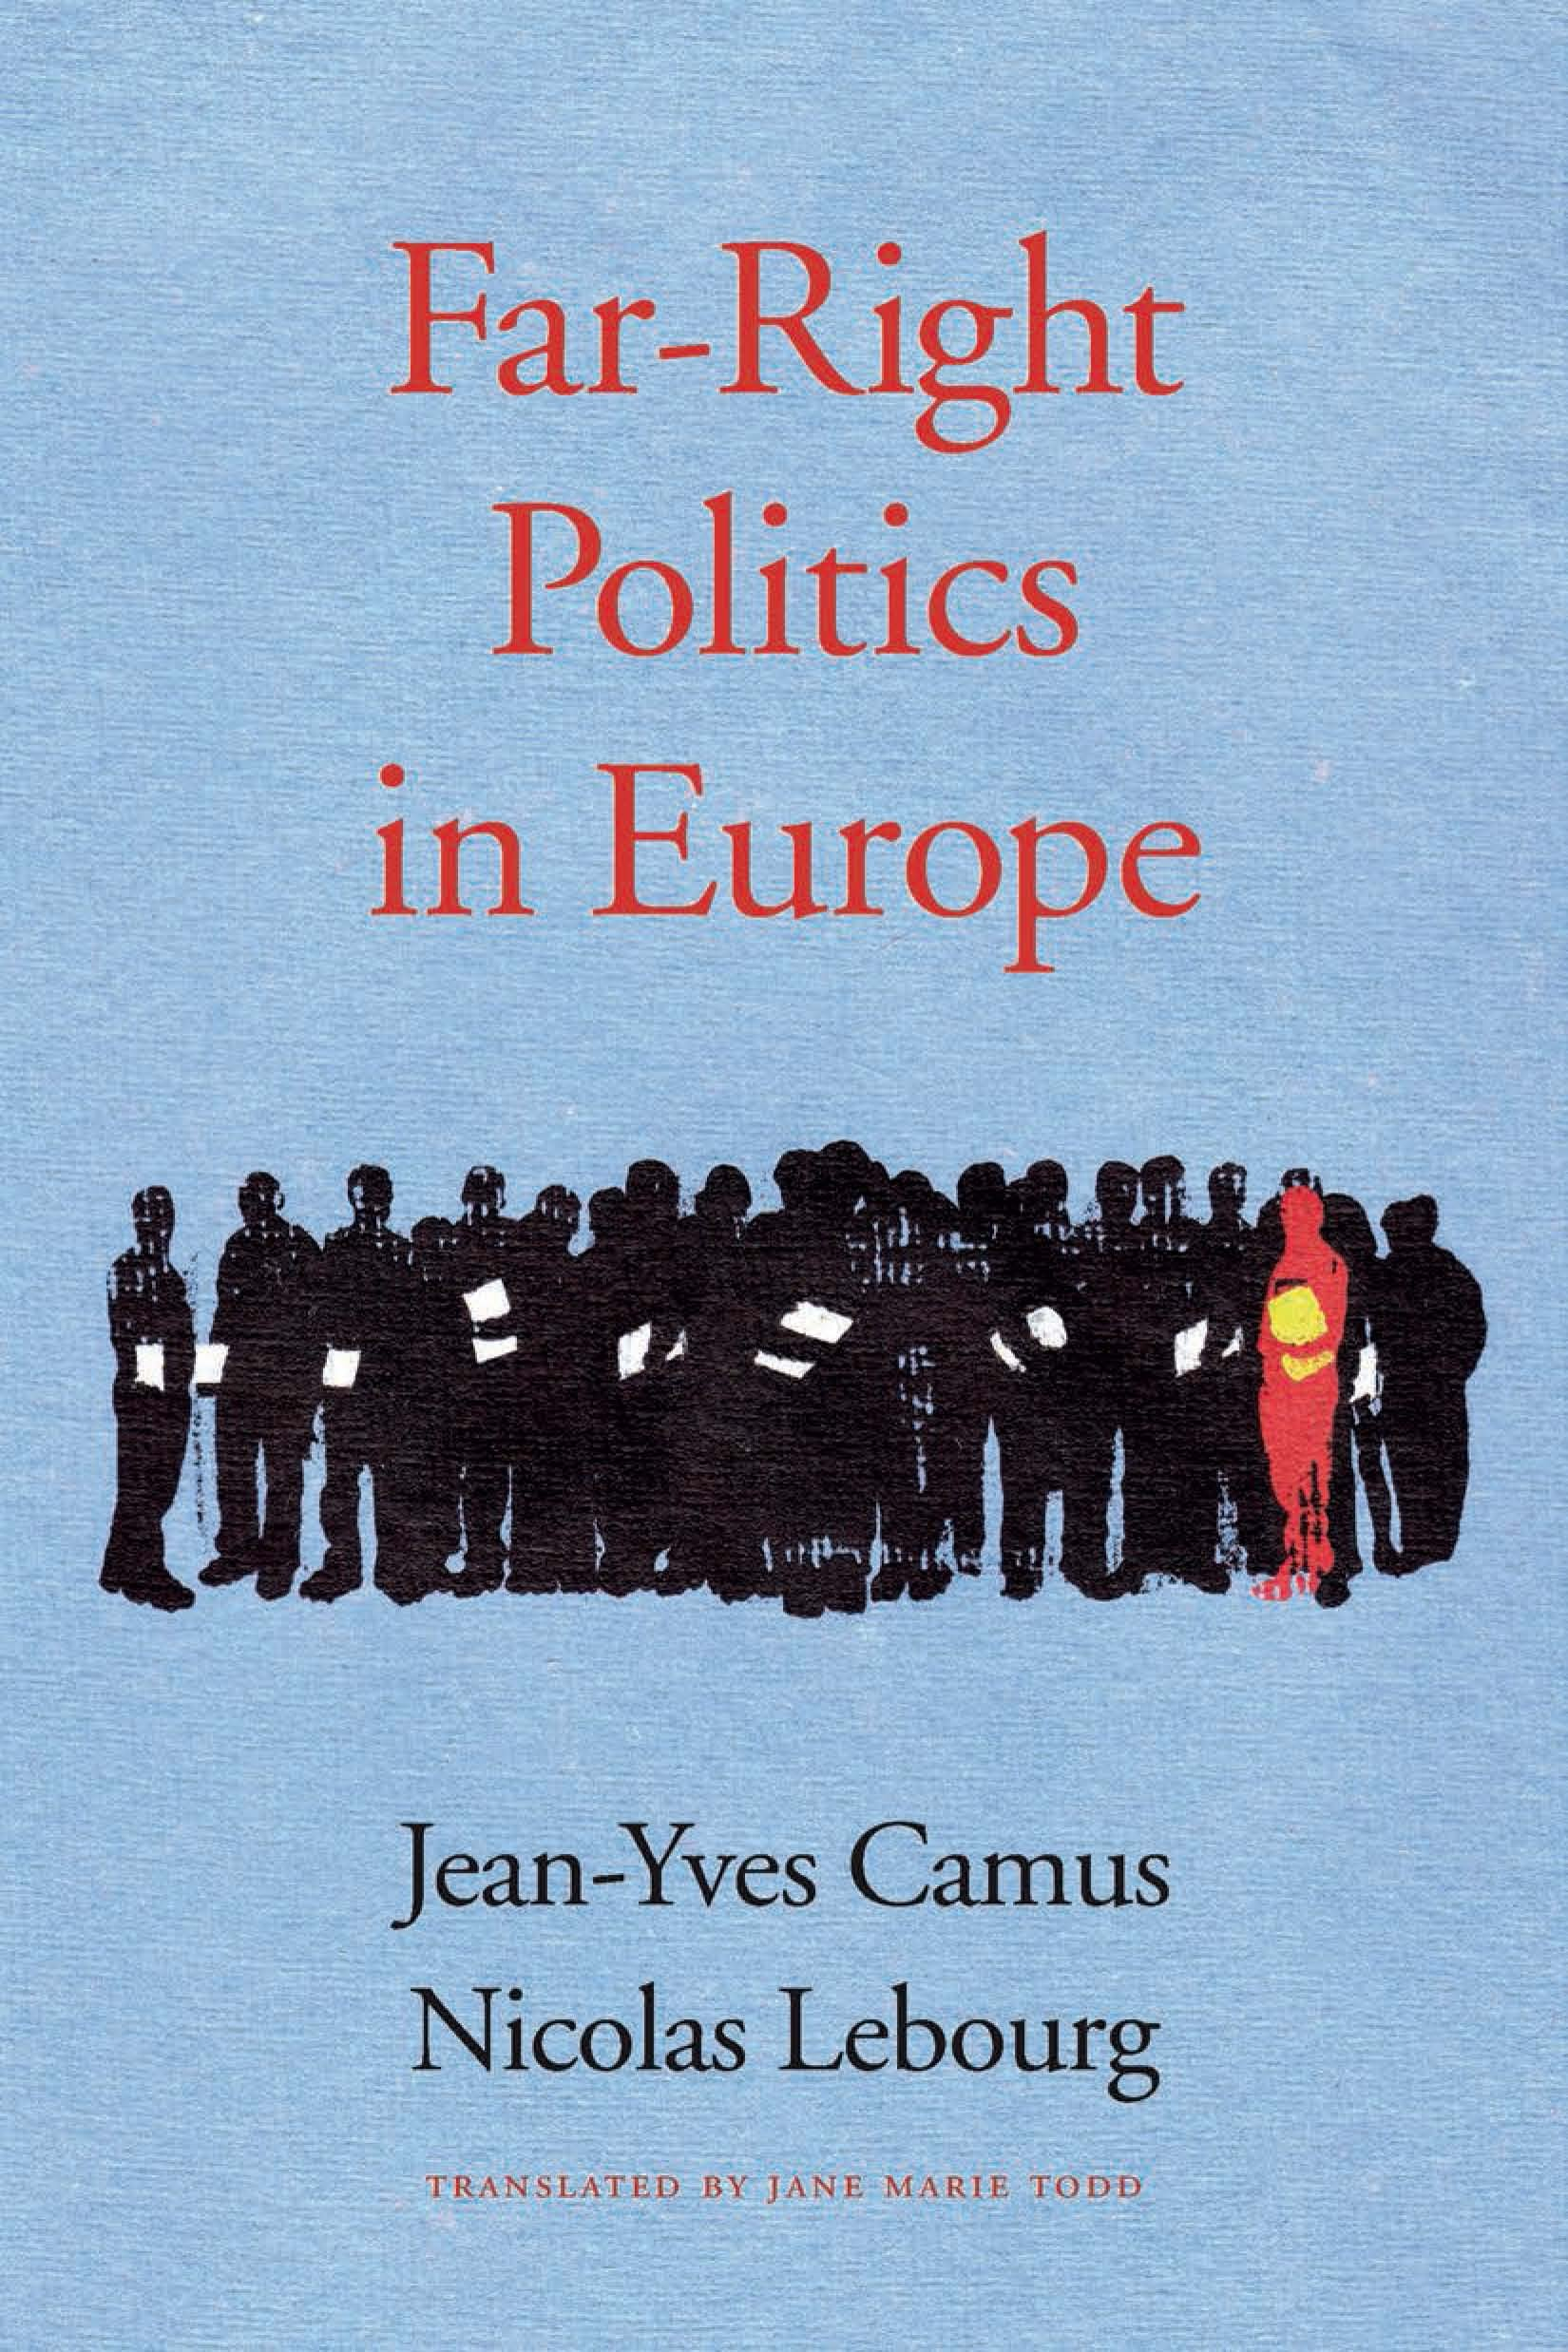 Image OfFar-Right Politics In Europe (English Edition)